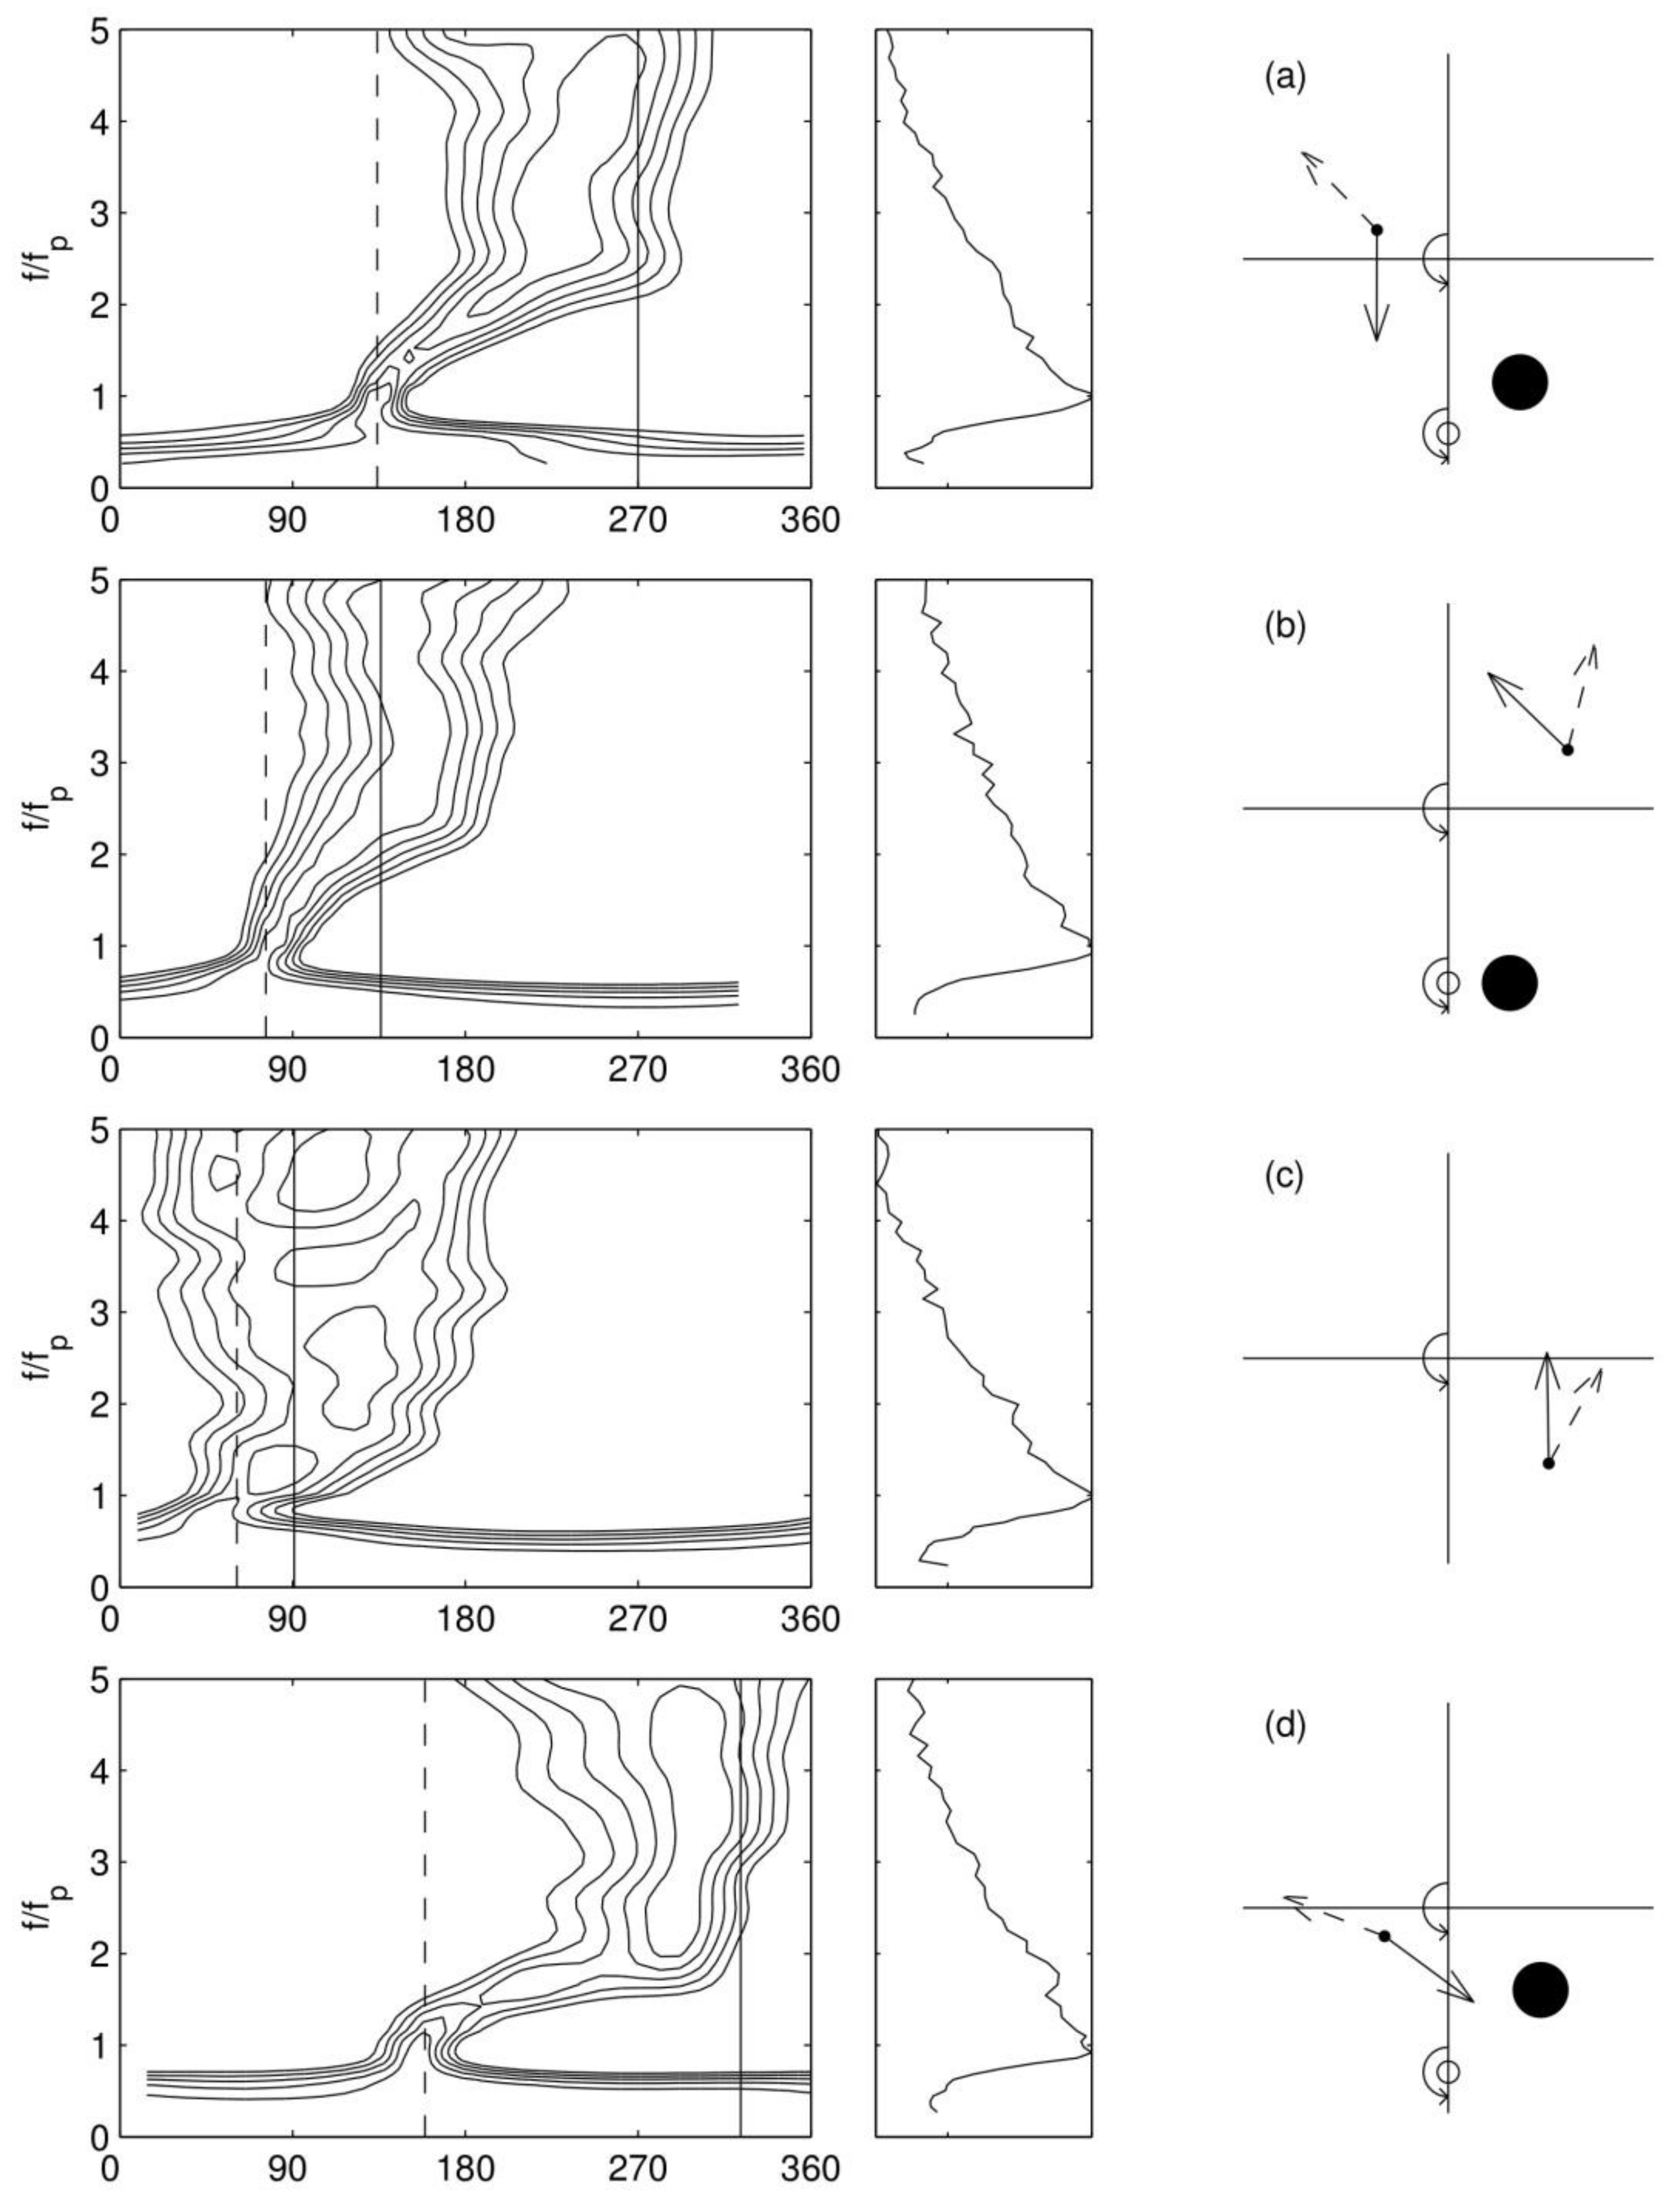 Atmosphere | Free Full-Text | A Review of Parametric Descriptions ...